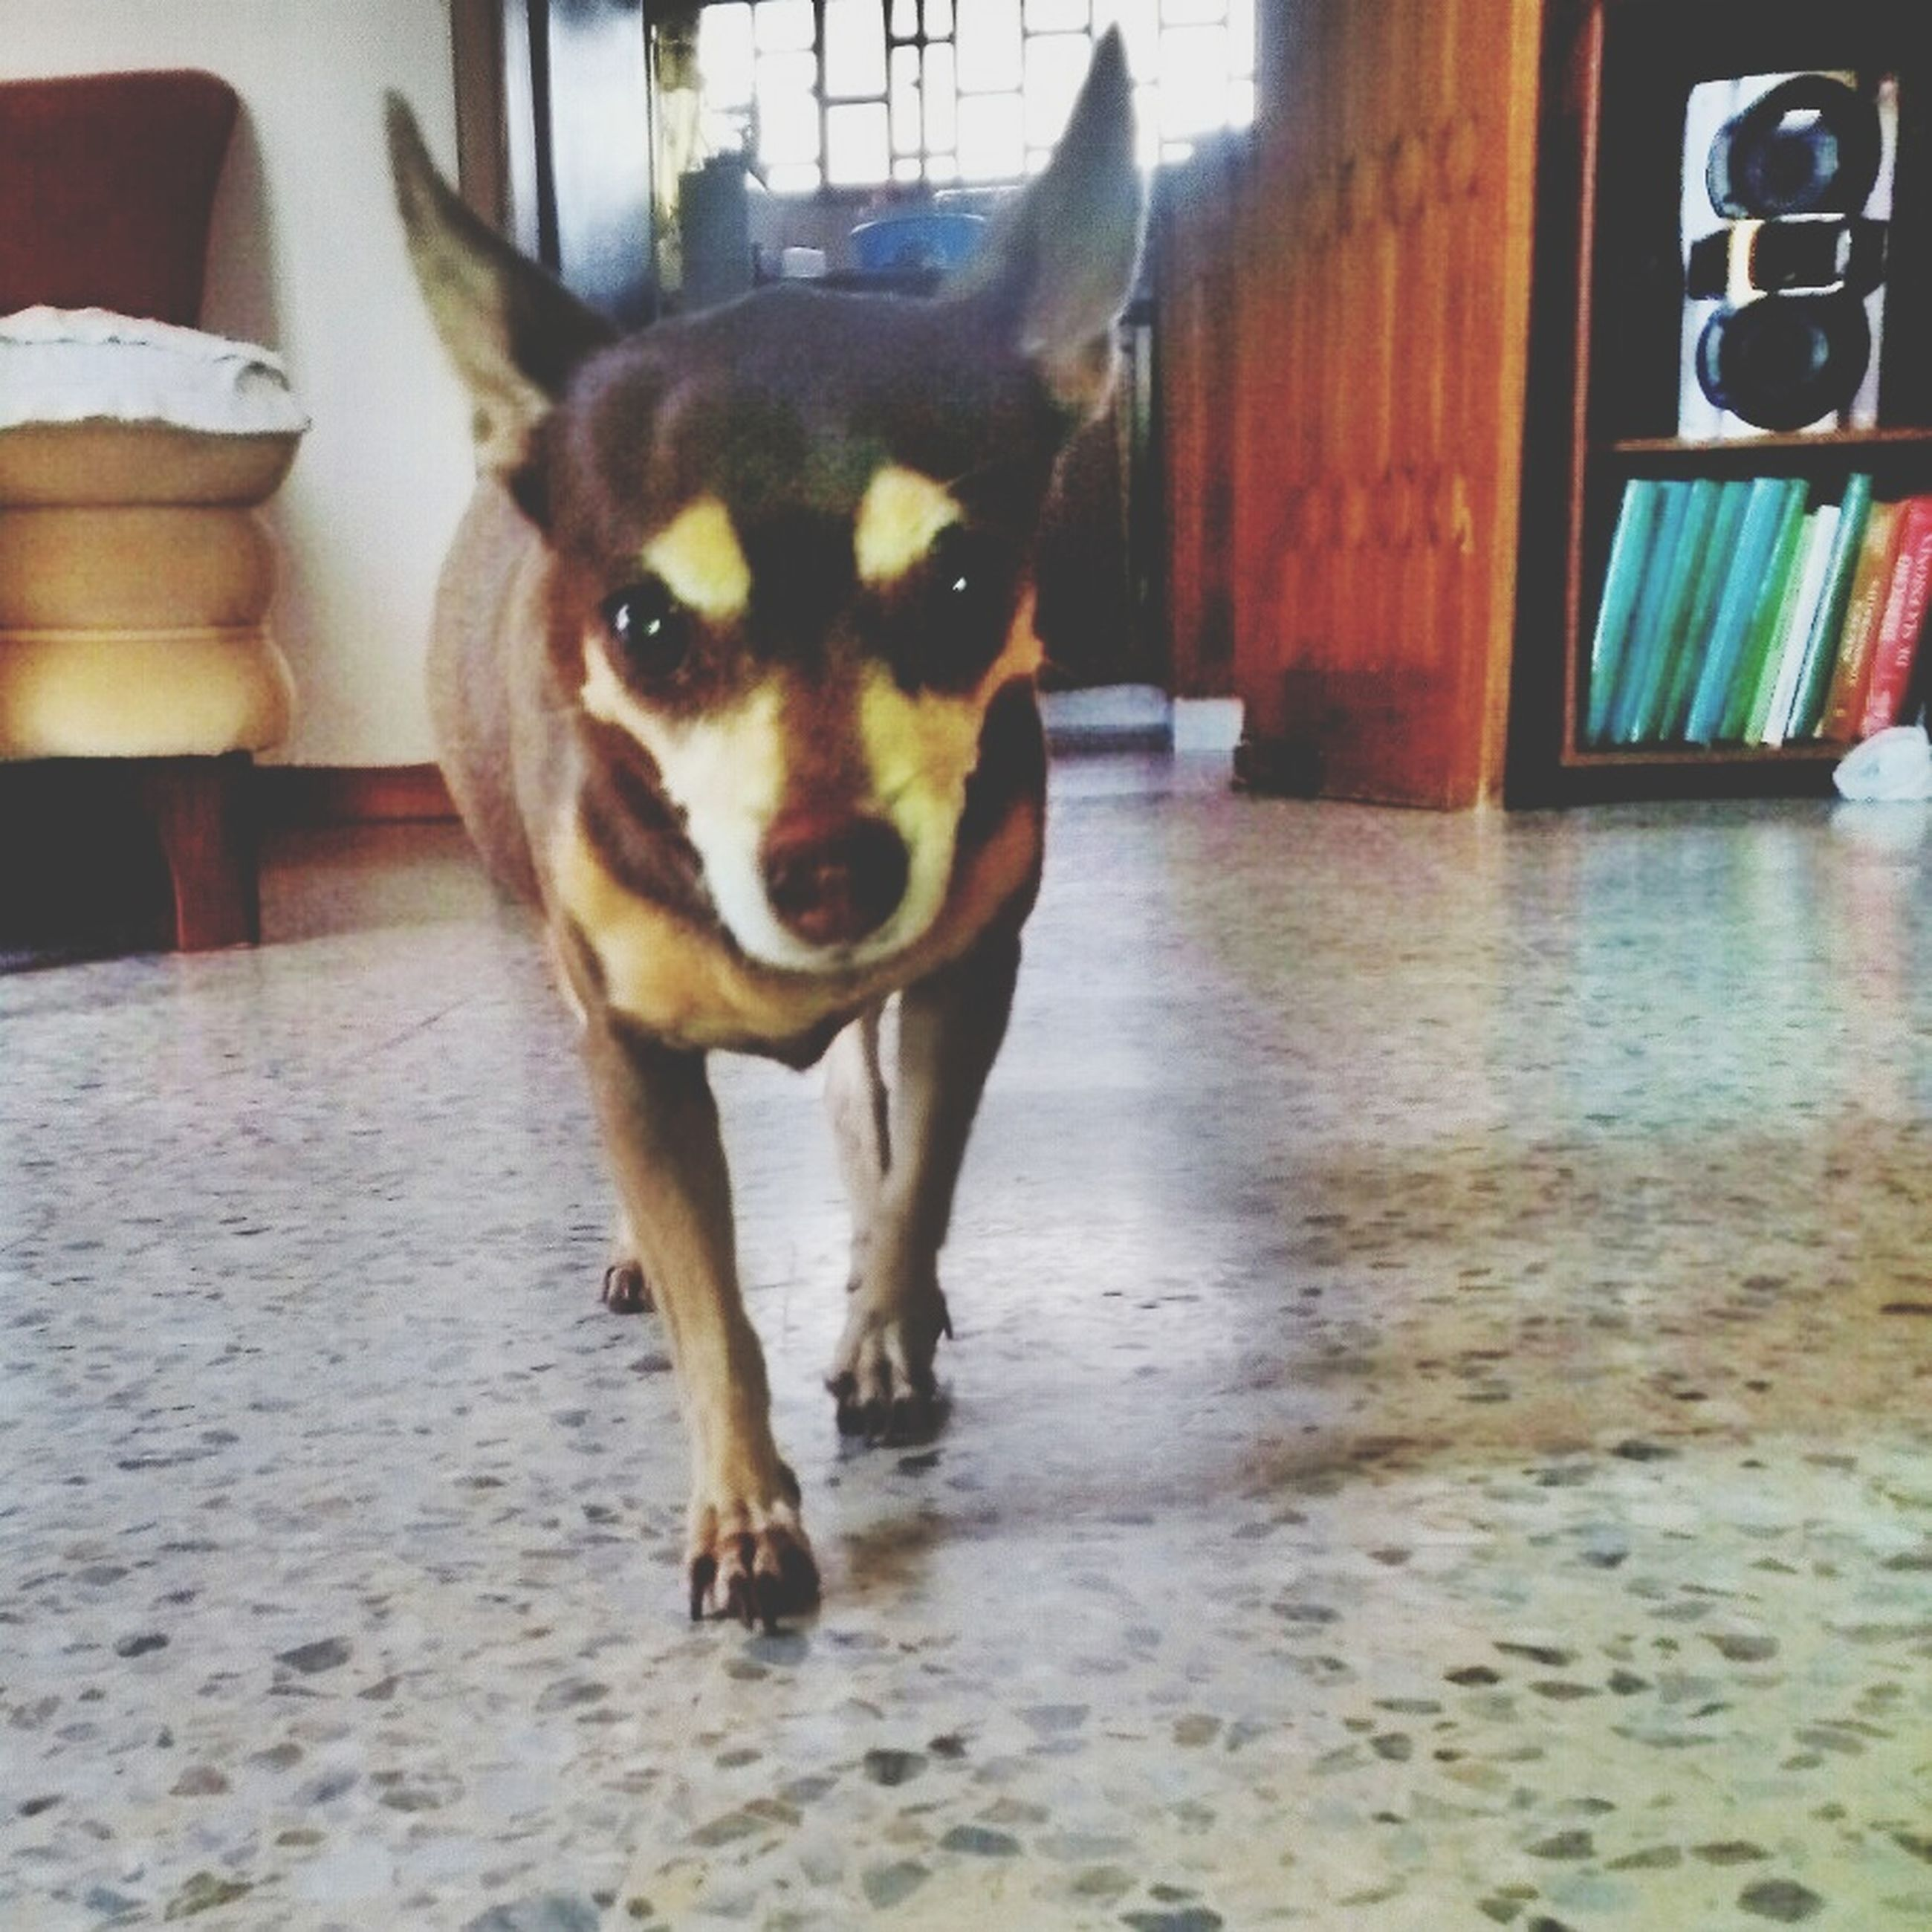 pets, domestic animals, one animal, animal themes, dog, mammal, portrait, looking at camera, sitting, animal head, no people, zoology, pet collar, close-up, focus on foreground, indoors, front view, animal, alertness